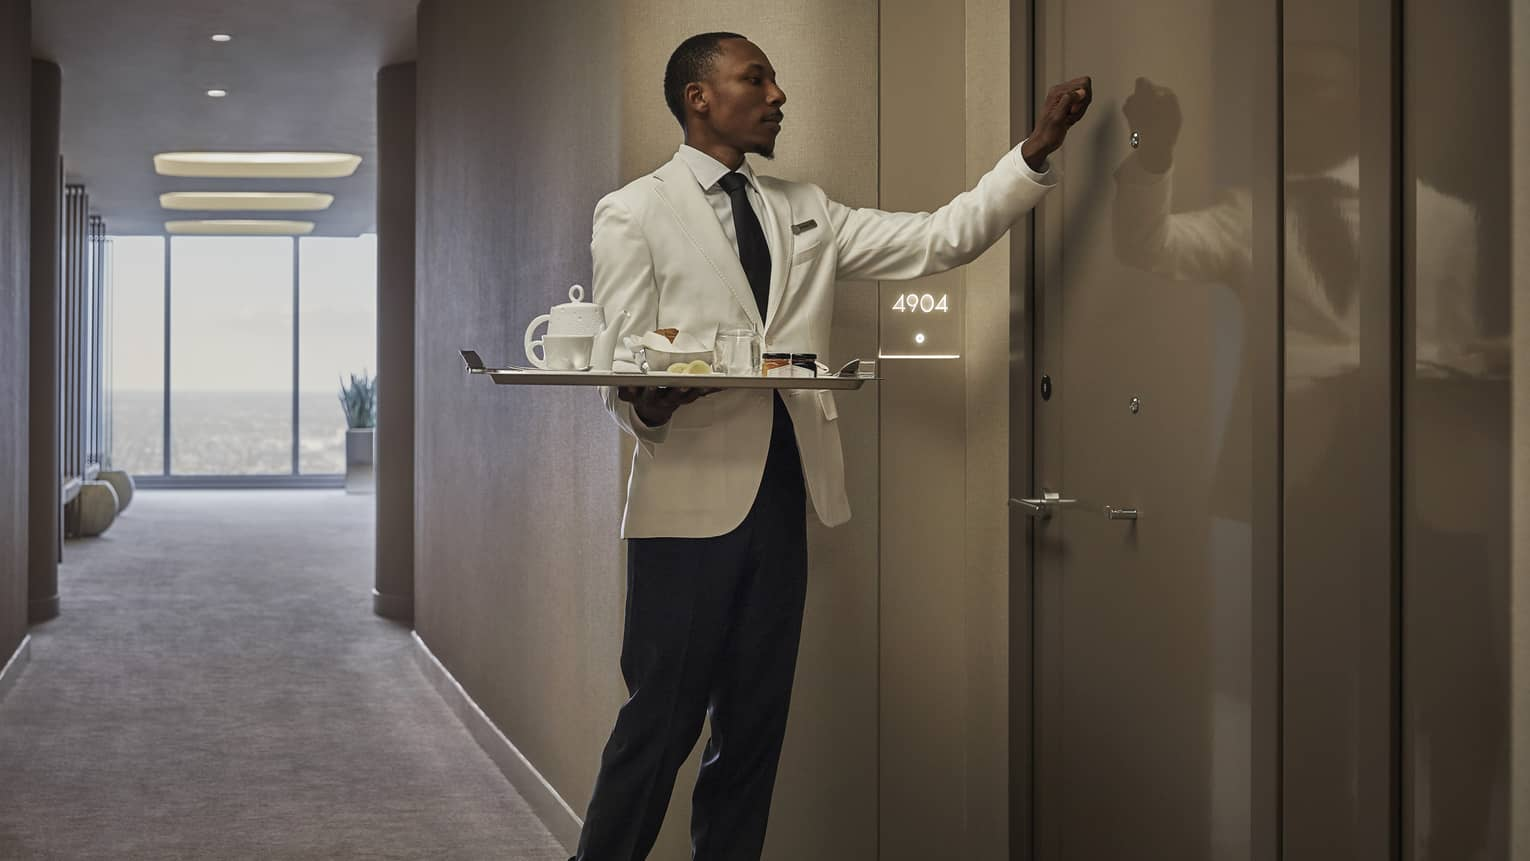 A Four Seasons staff delivers room service to a guest room at Four Seasons Philadelphia